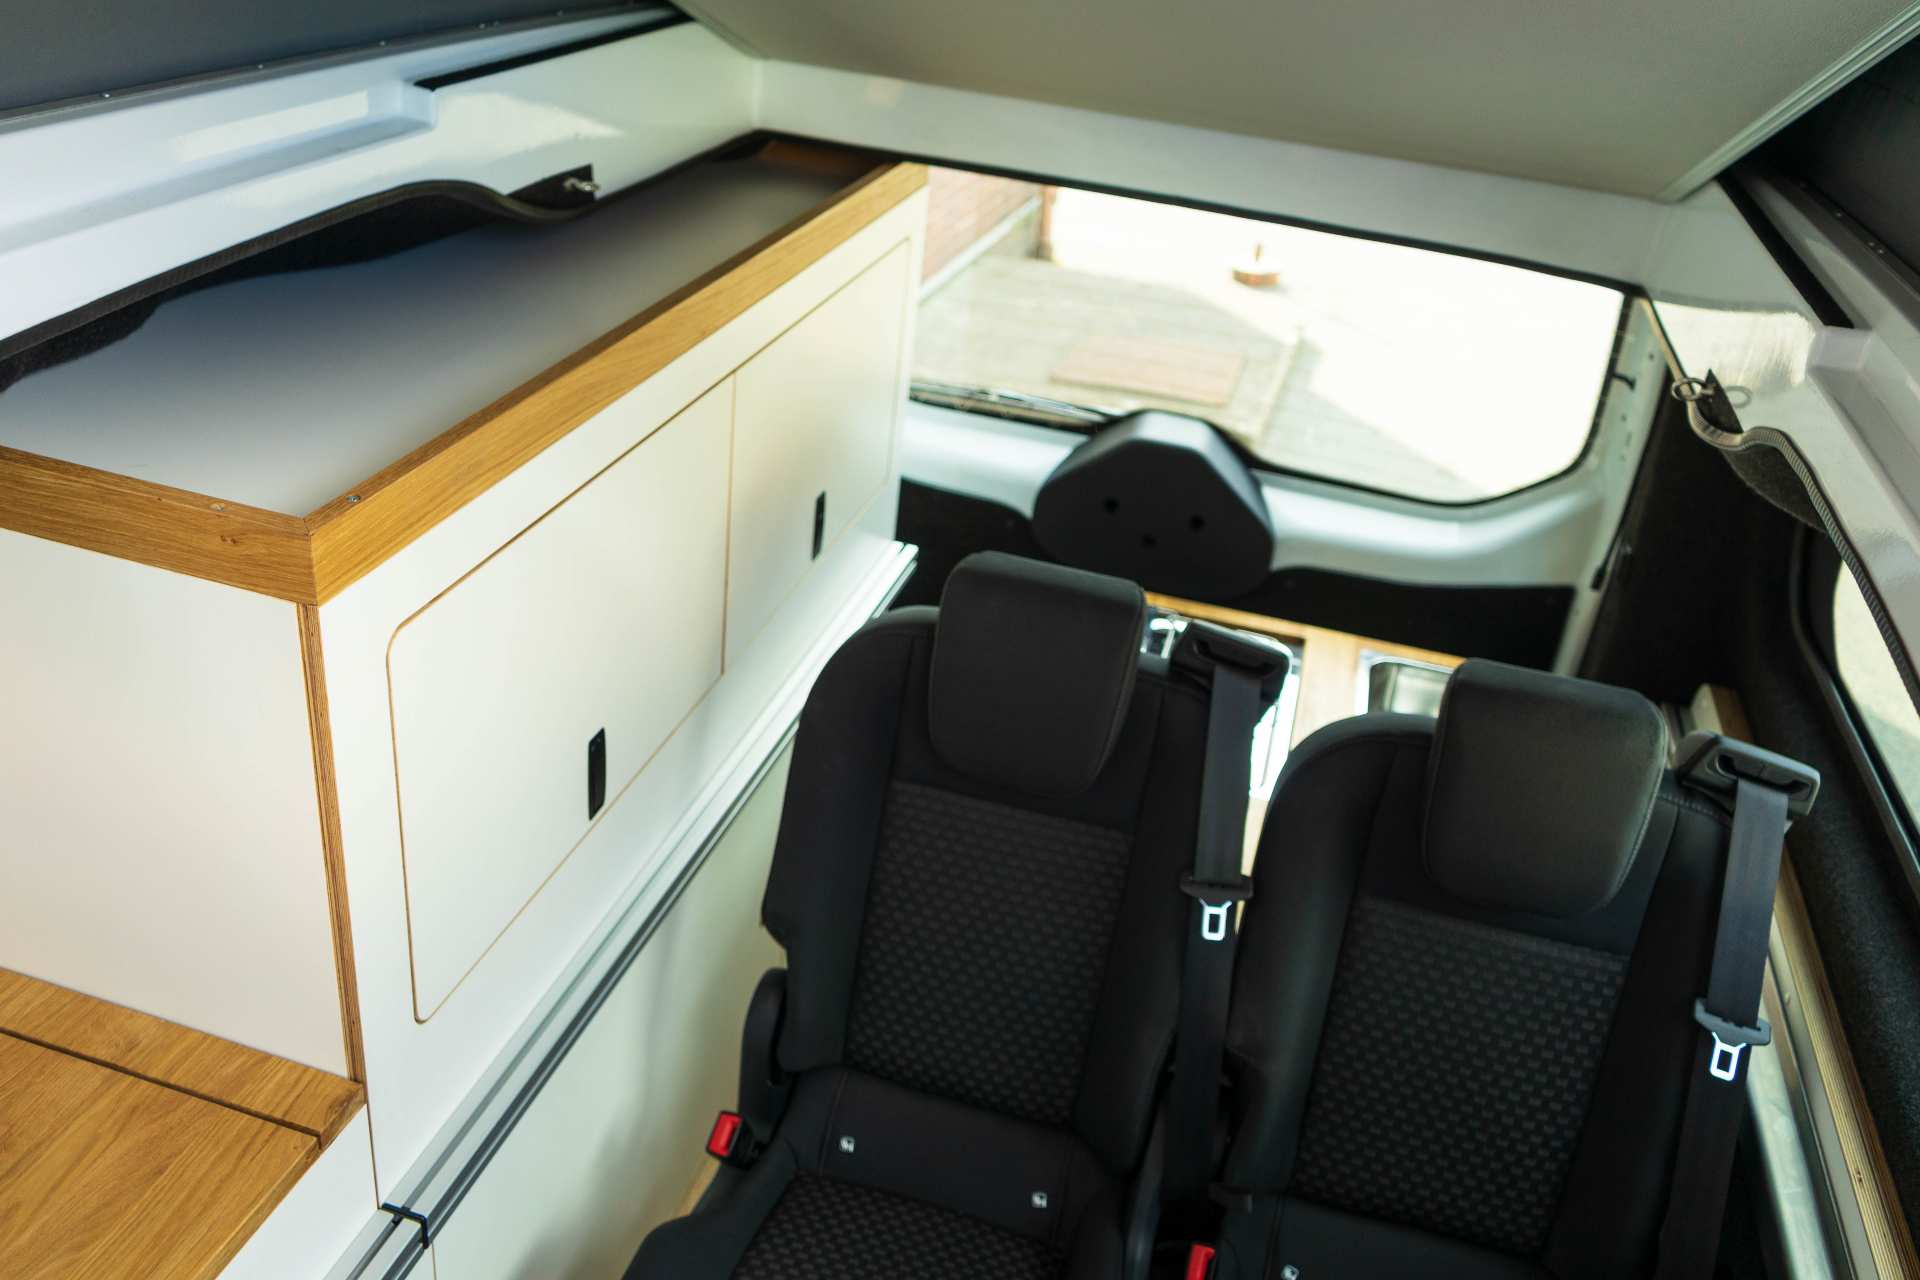 Individualausbau: EXPEDITION Ford Transit Custom, langer Radstand - 26